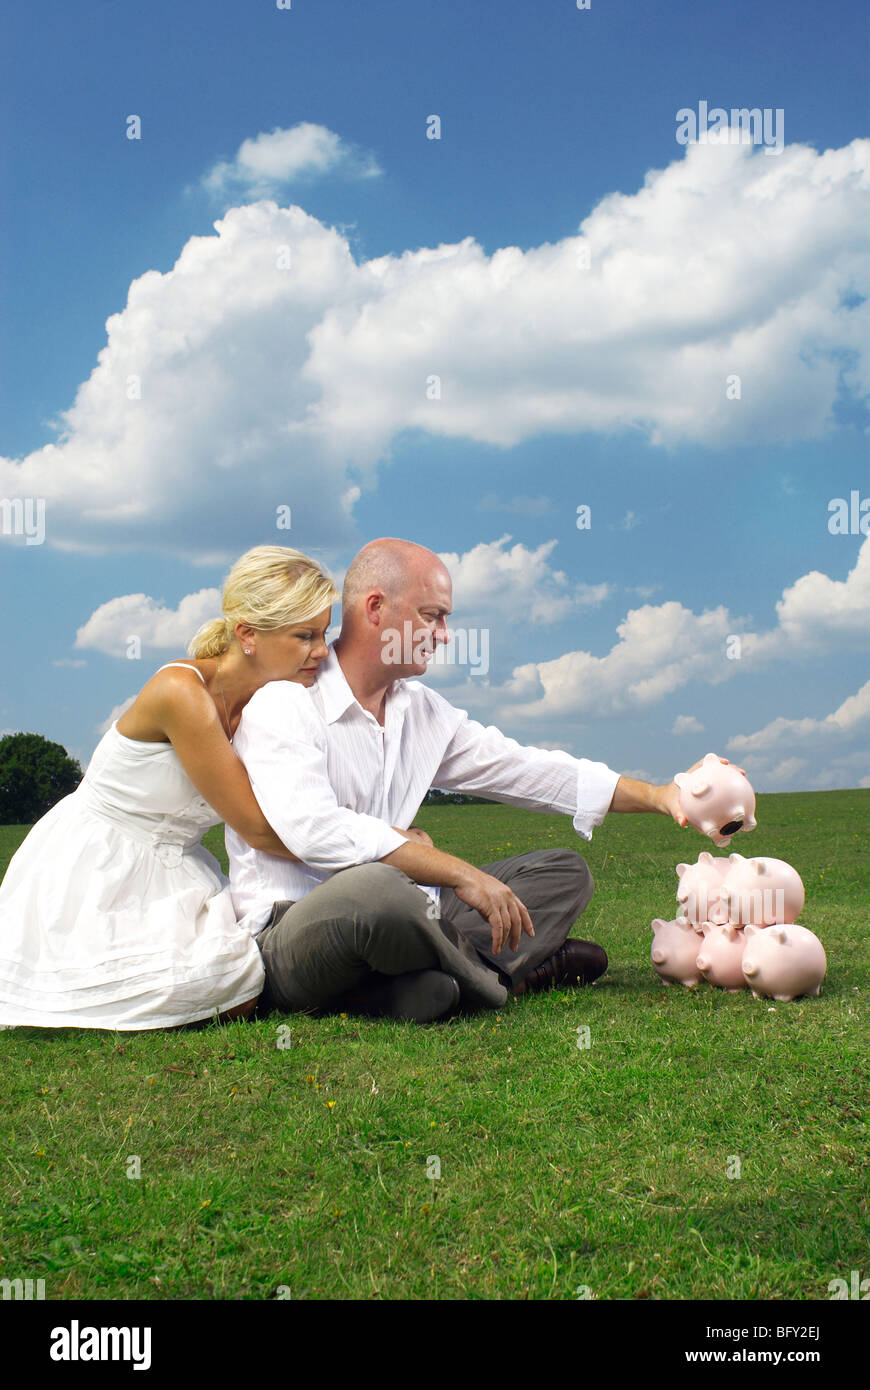 couple stacking piggy banks - Stock Image